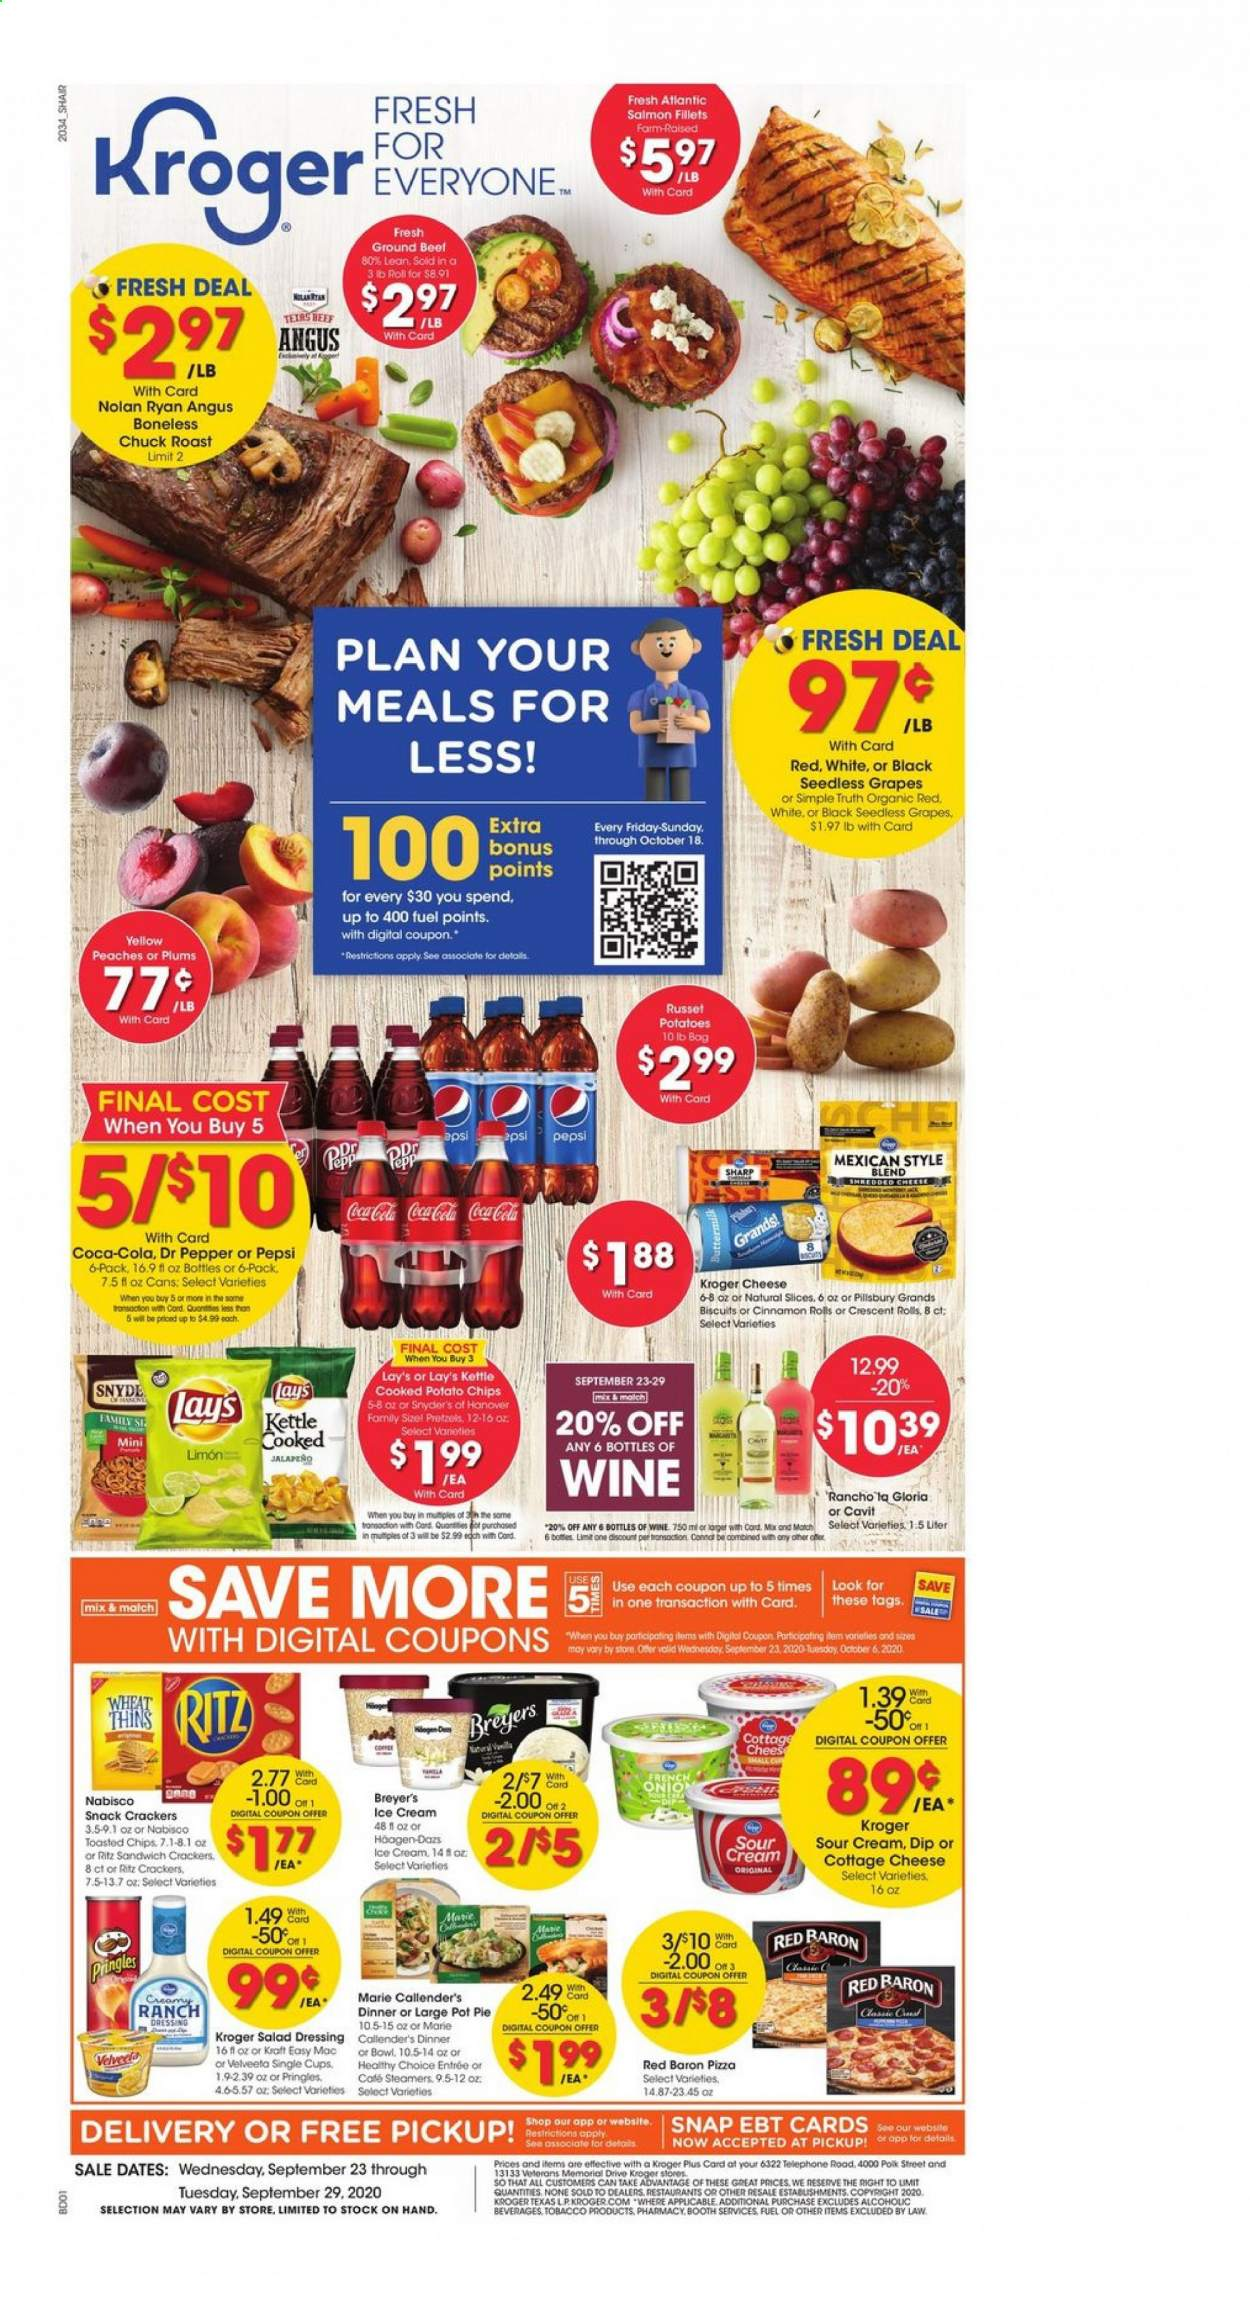 Kroger Flyer - 09.23.2020 - 09.29.2020 - Sales products - russet potatoes, potatoes, grapes, seedless grapes, plums, pretzels, rolls, cinnamon rolls, crescent roll dough, pot pies, pie, salmon, pizza, sandwich, salad, cottage cheese, shredded cheese, cheese, sour cream, ice cream, crackers, potato chips, Pringles, chips, snack, Lay's, Pillsbury, pepper, jalapeño, ranch dressing, dressing, salad dressing, Coca-Cola, Pepsi, Dr. Pepper, wine, beef meat, ground beef, pot, cup, Sharp, kettle, Breyer, fuel. Page 1.